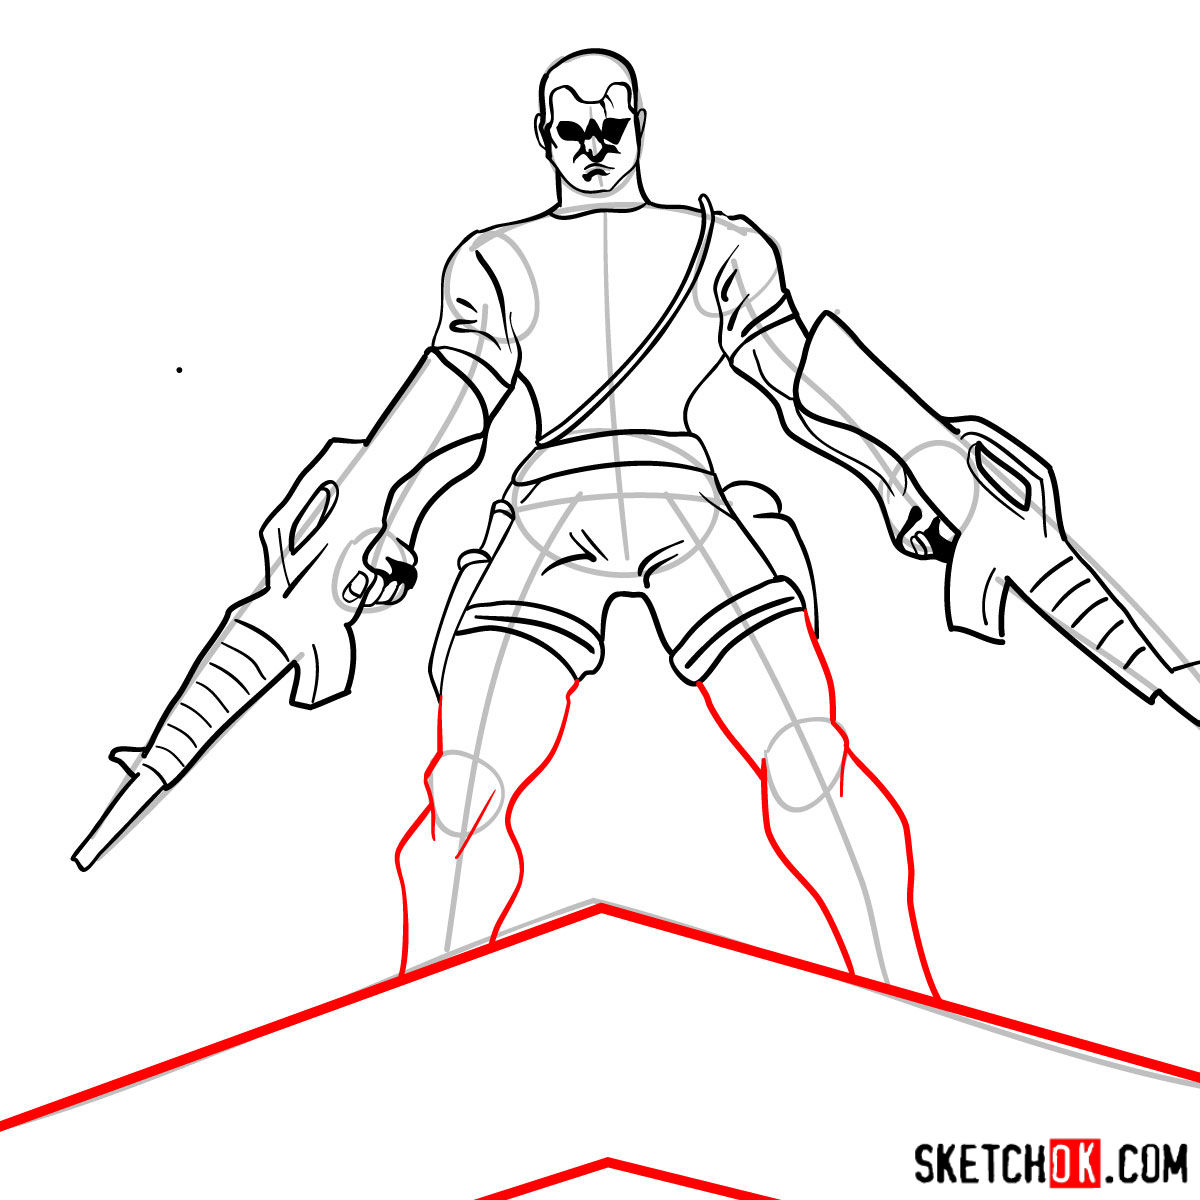 How to draw The Punisher with two submachine guns - step 10